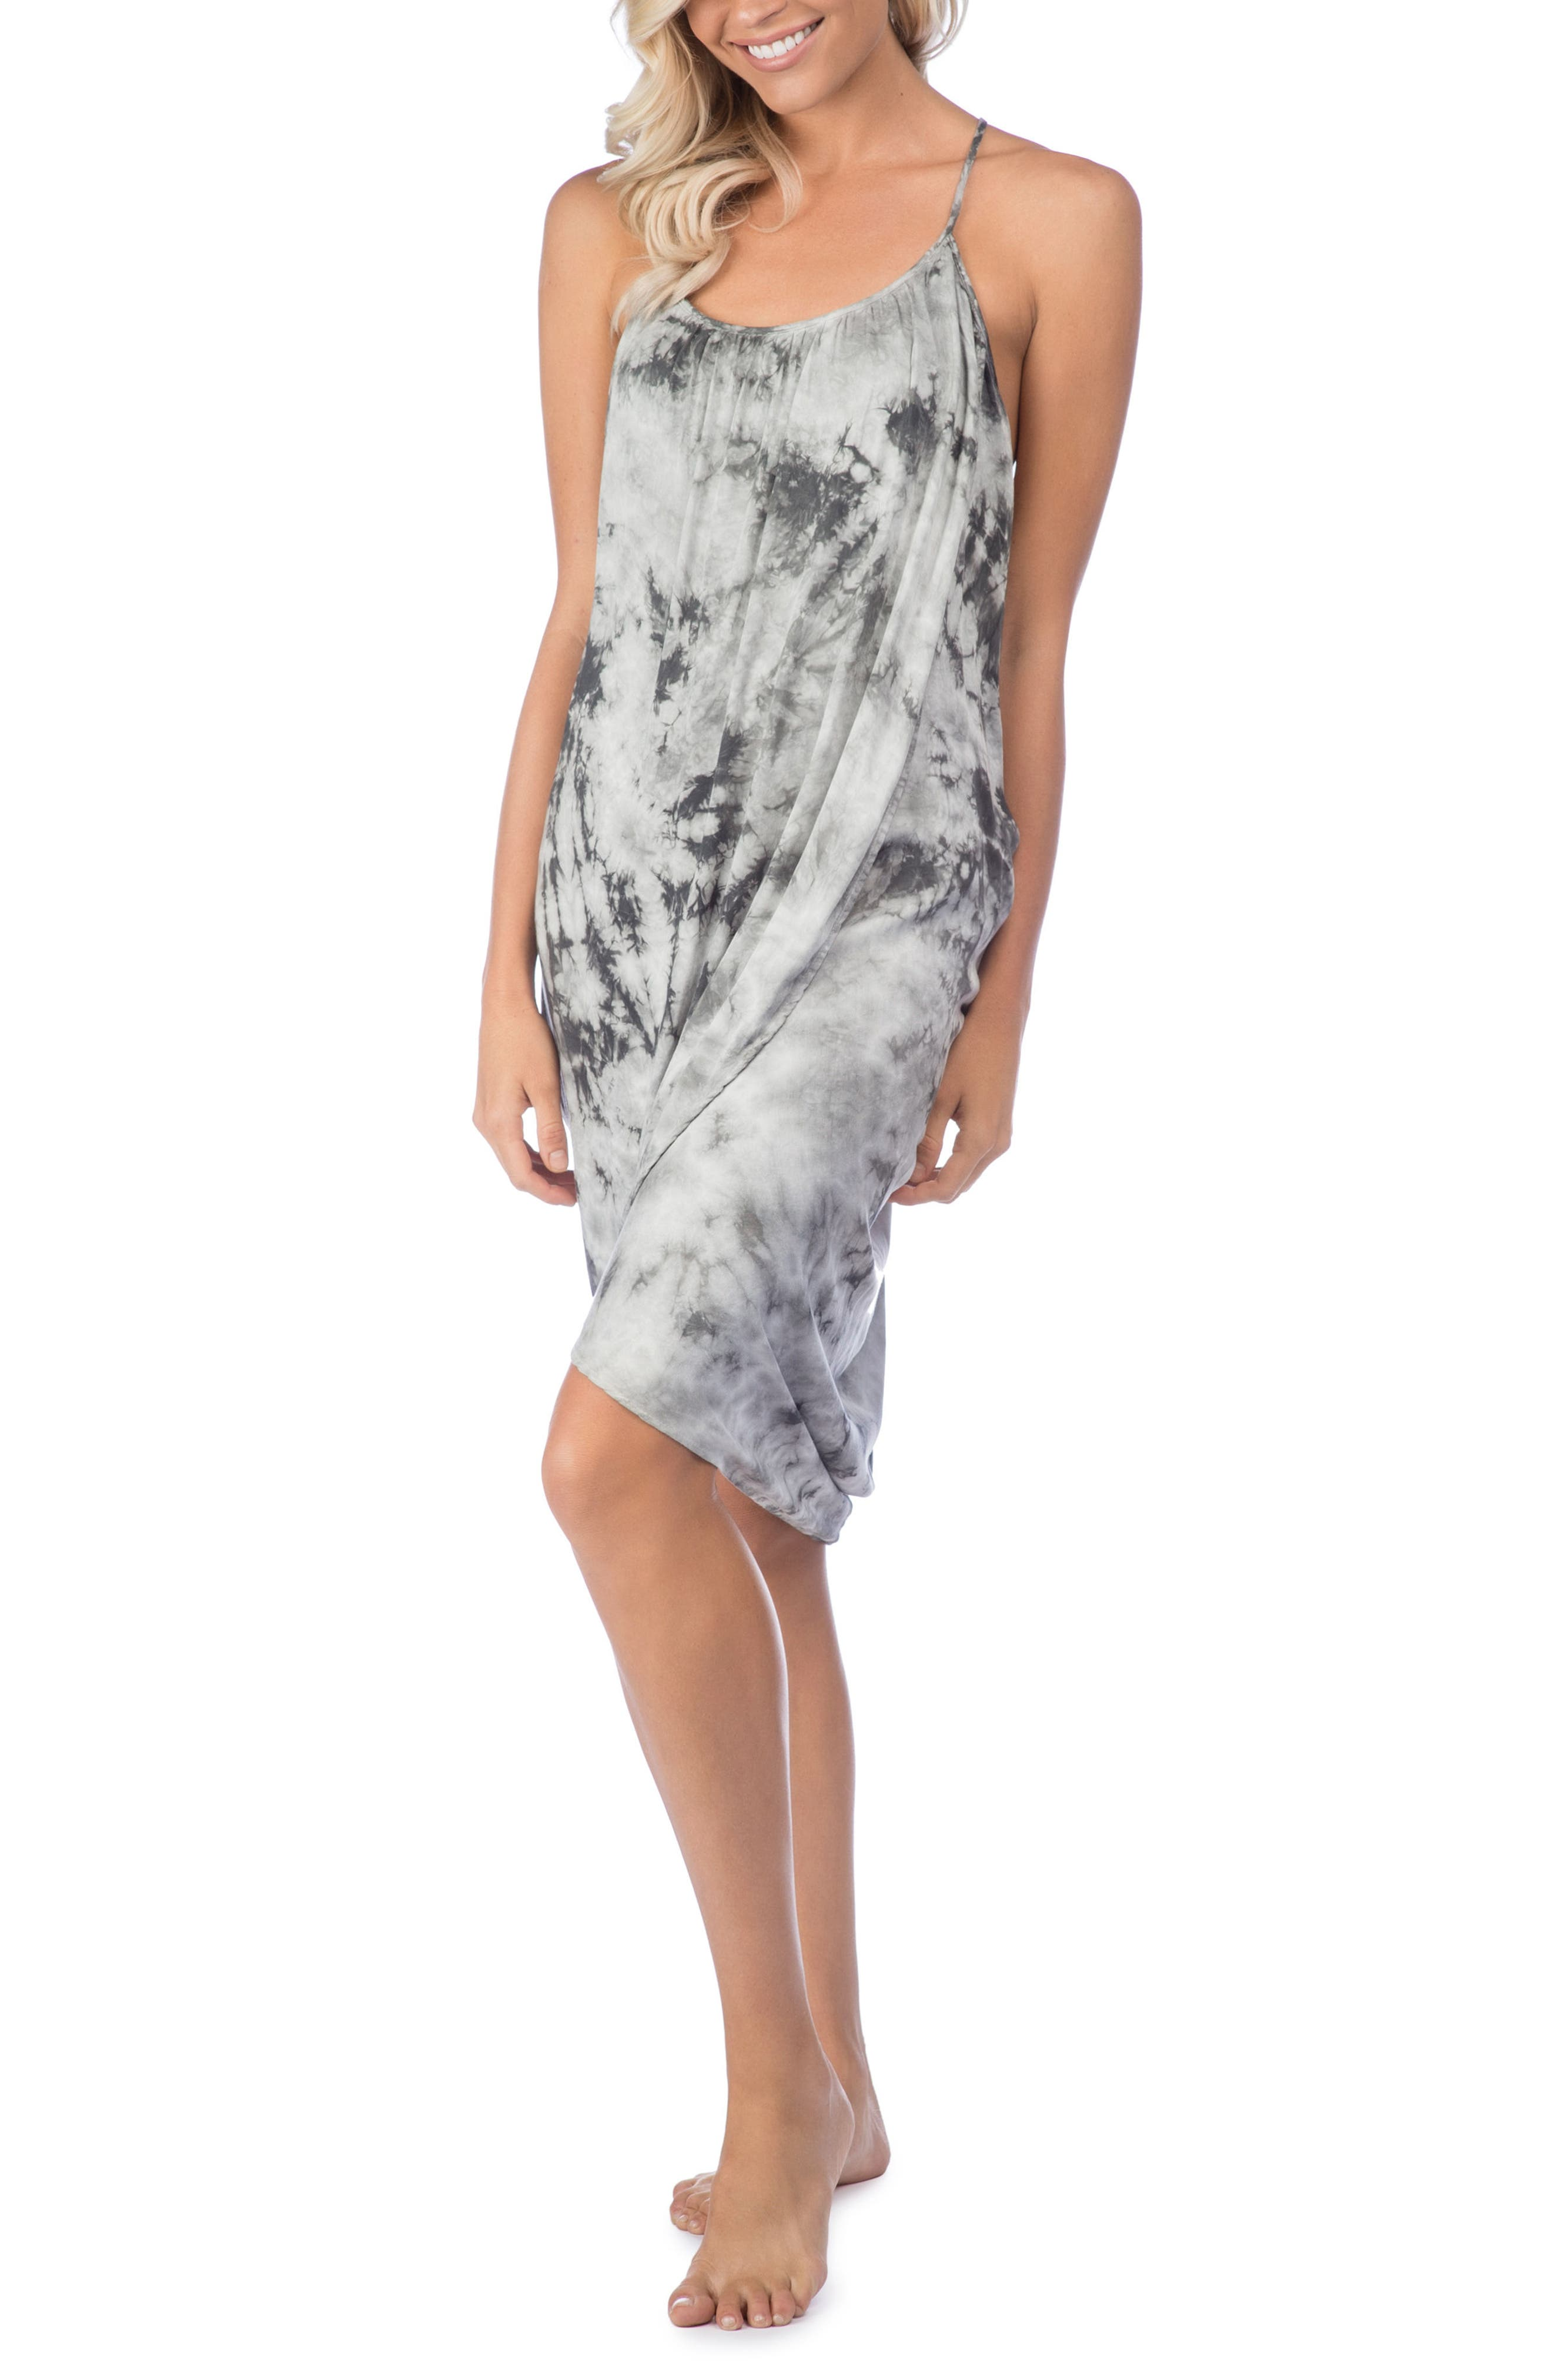 Crystal Forest Genvieve Cover-Up Dress,                             Main thumbnail 1, color,                             020